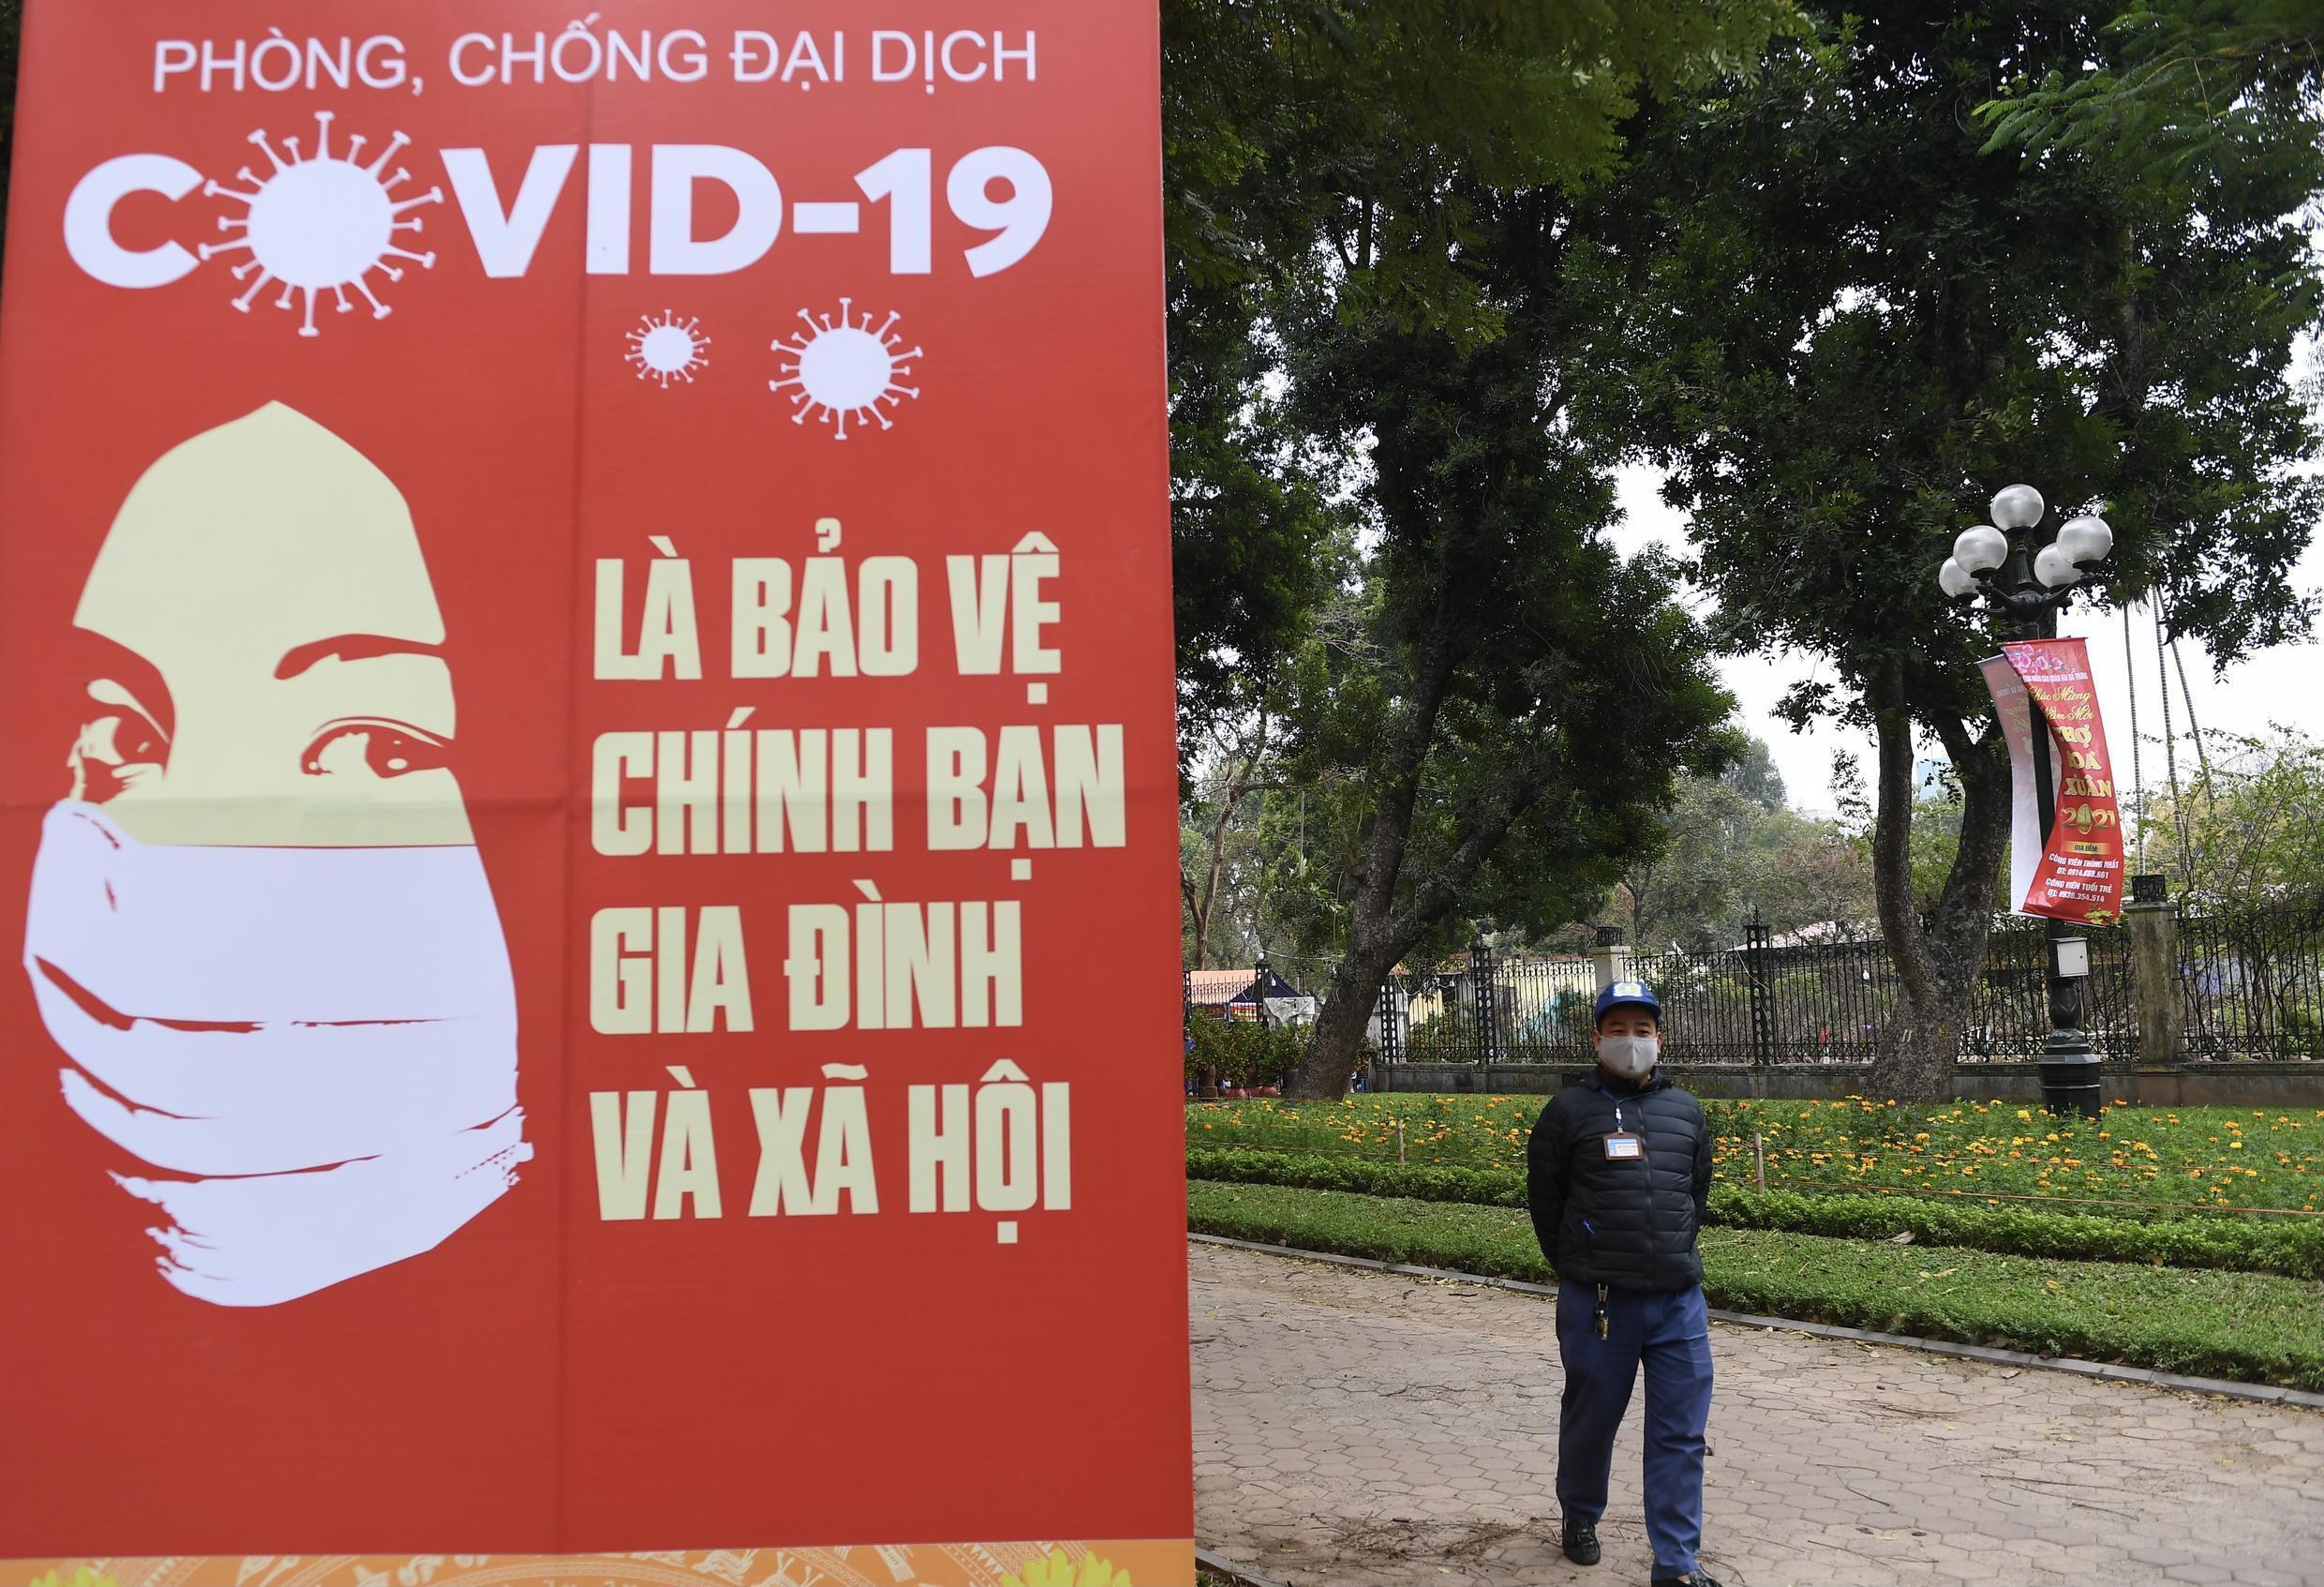 Vietnam has reported its first coronavirus outbreak in almost two months